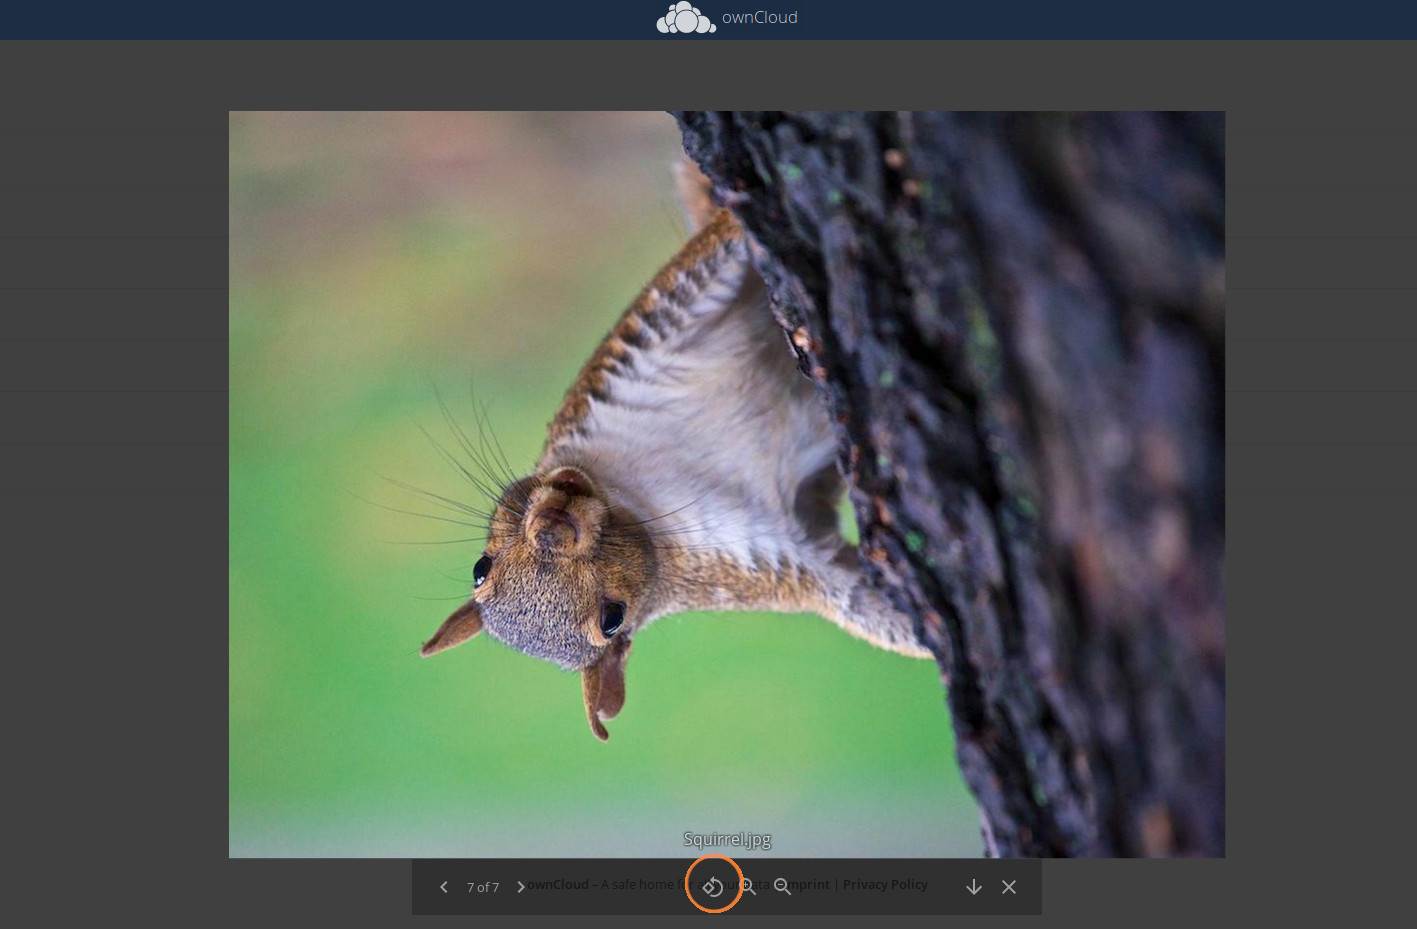 ownCloud media viewer image rotation